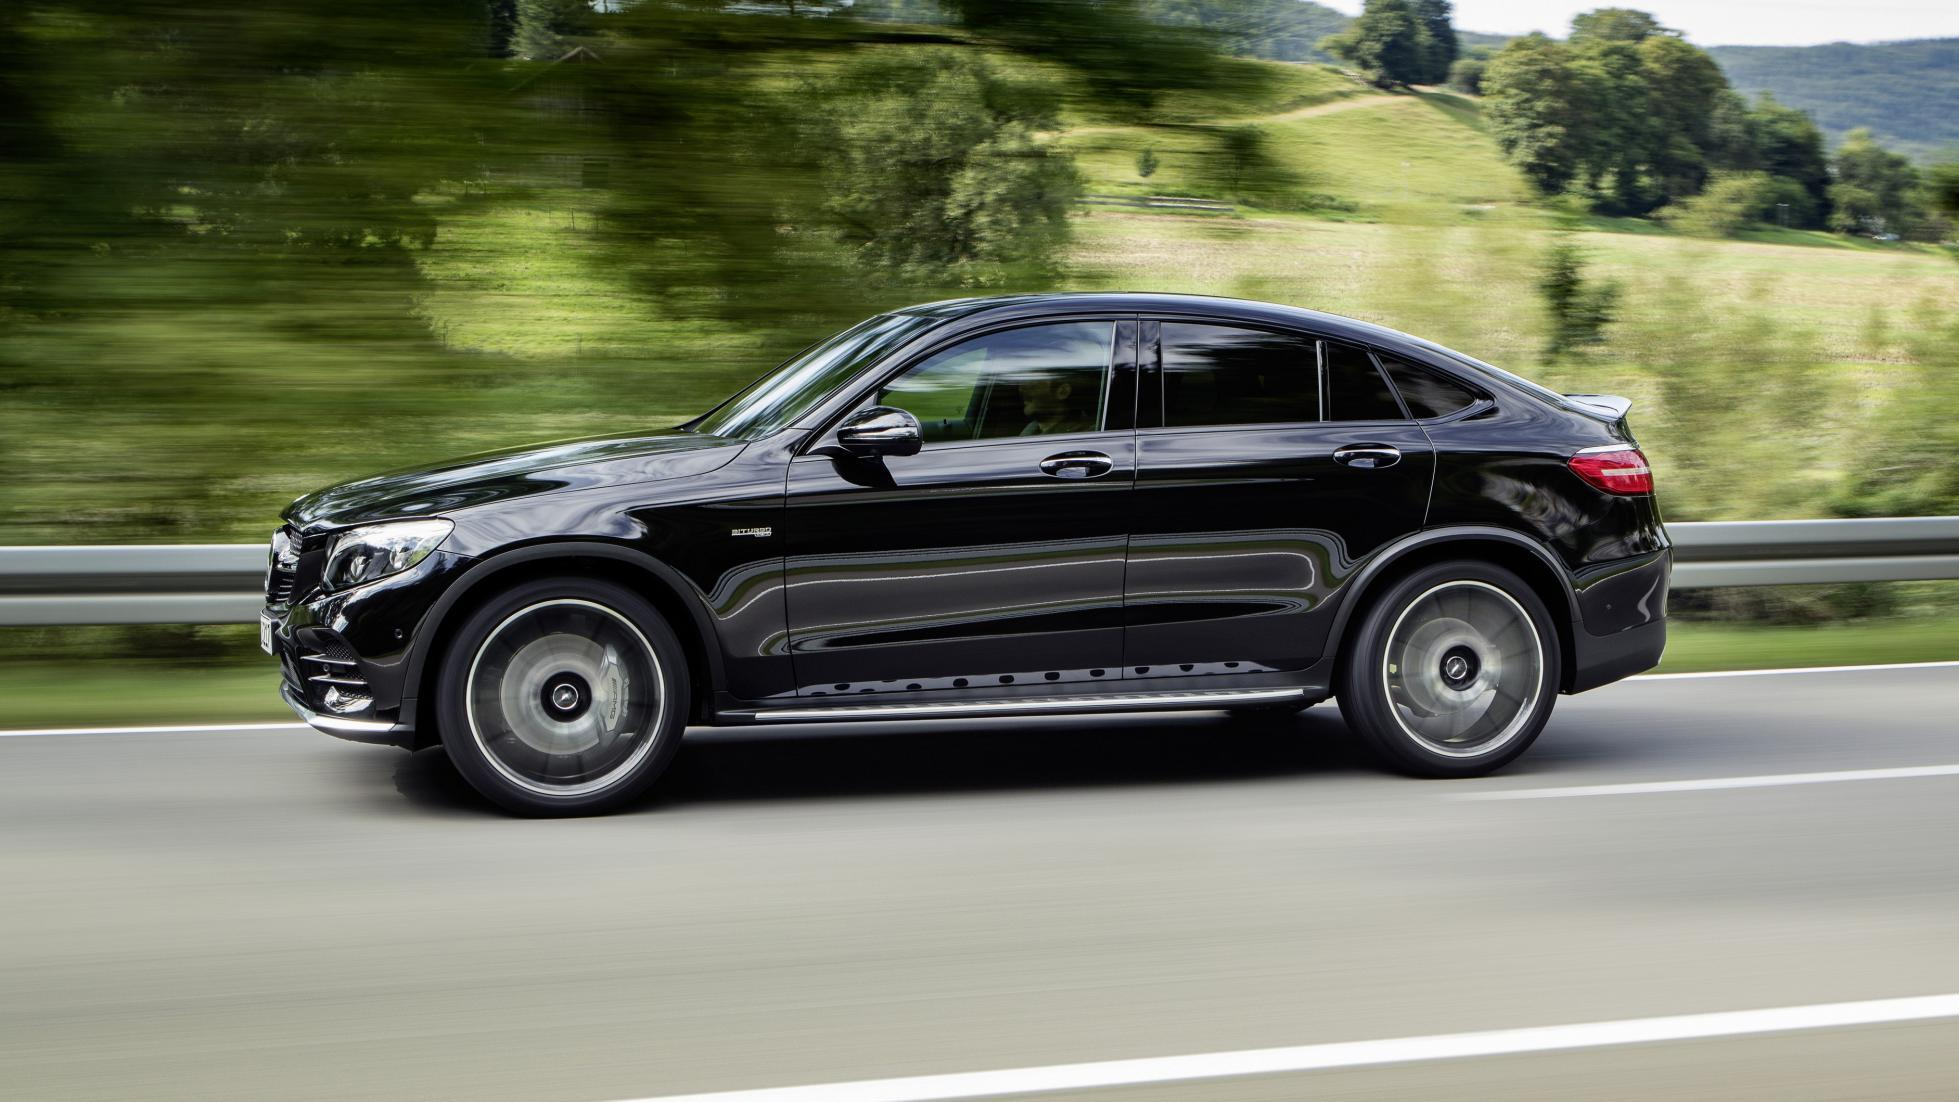 Mercedes-AMG GLC 43 Coupe review 362bhp SUV tested - First